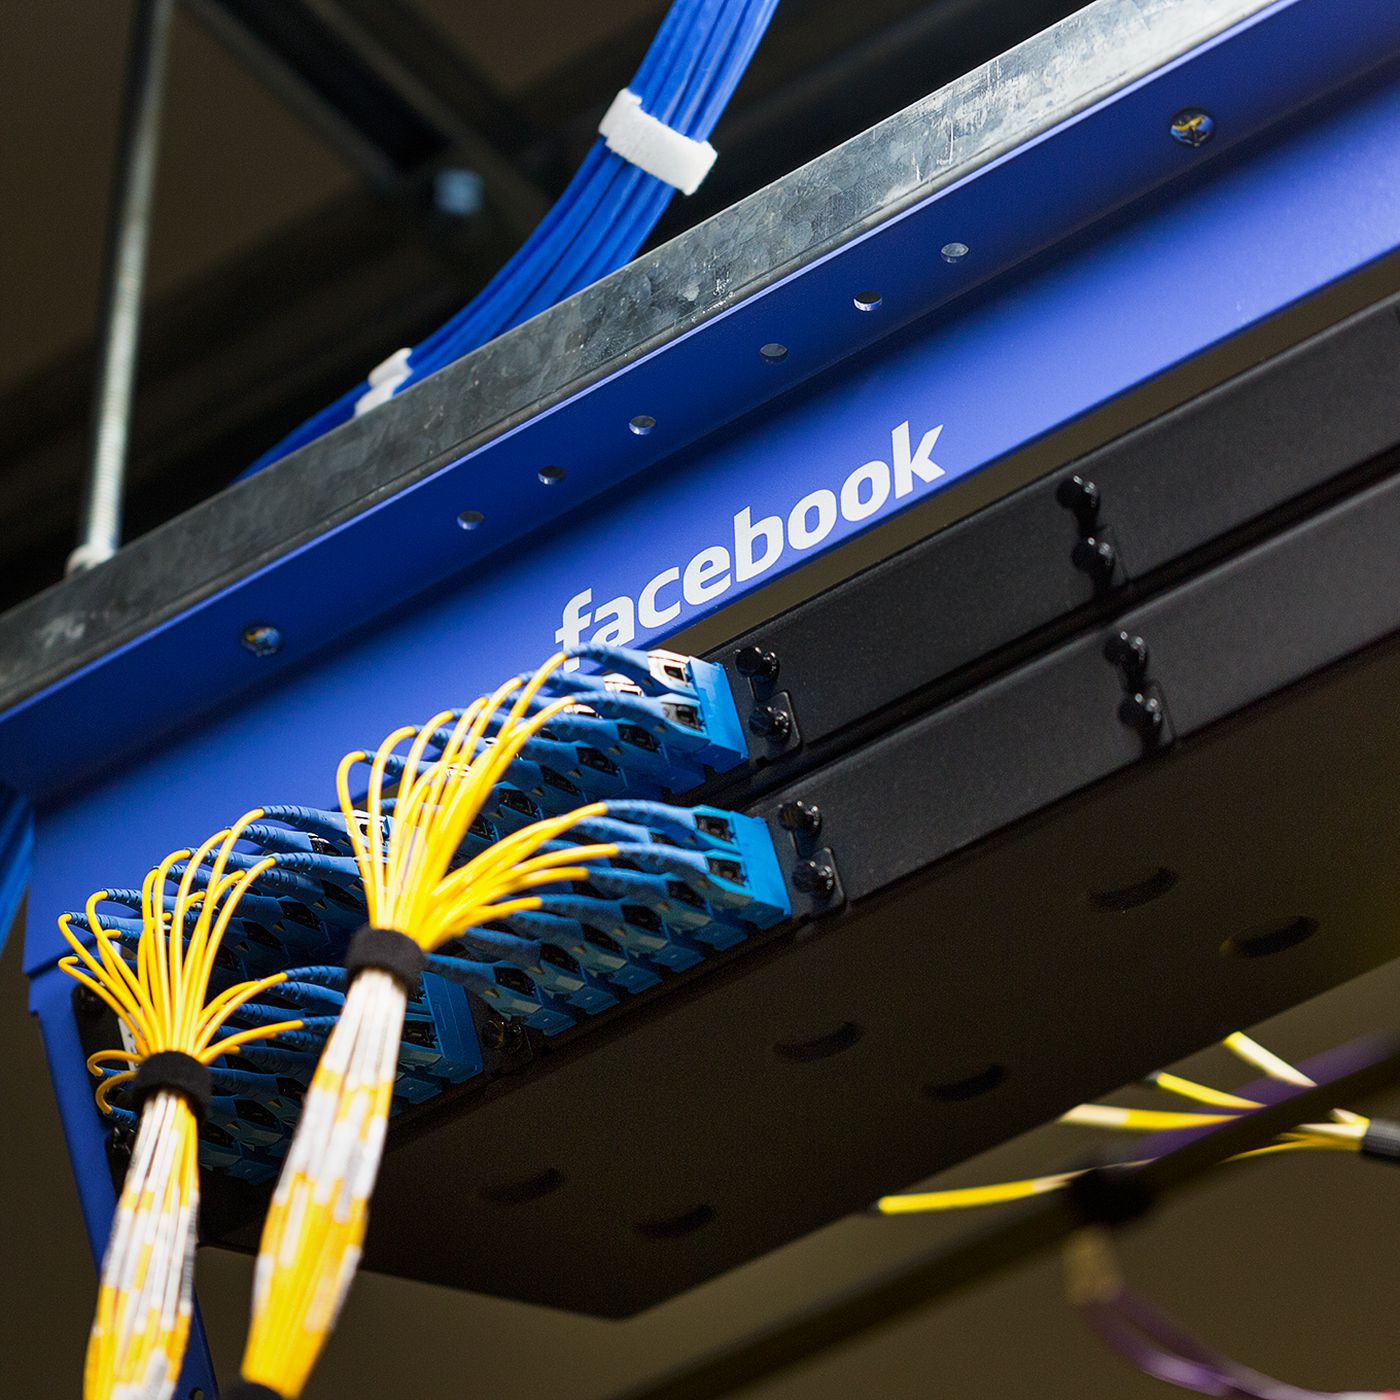 Does Facebook Think Youre Liberal Or Conservative Heres How To Electrical Wiring Books Group Picture Image By Tag Find Out The Verge